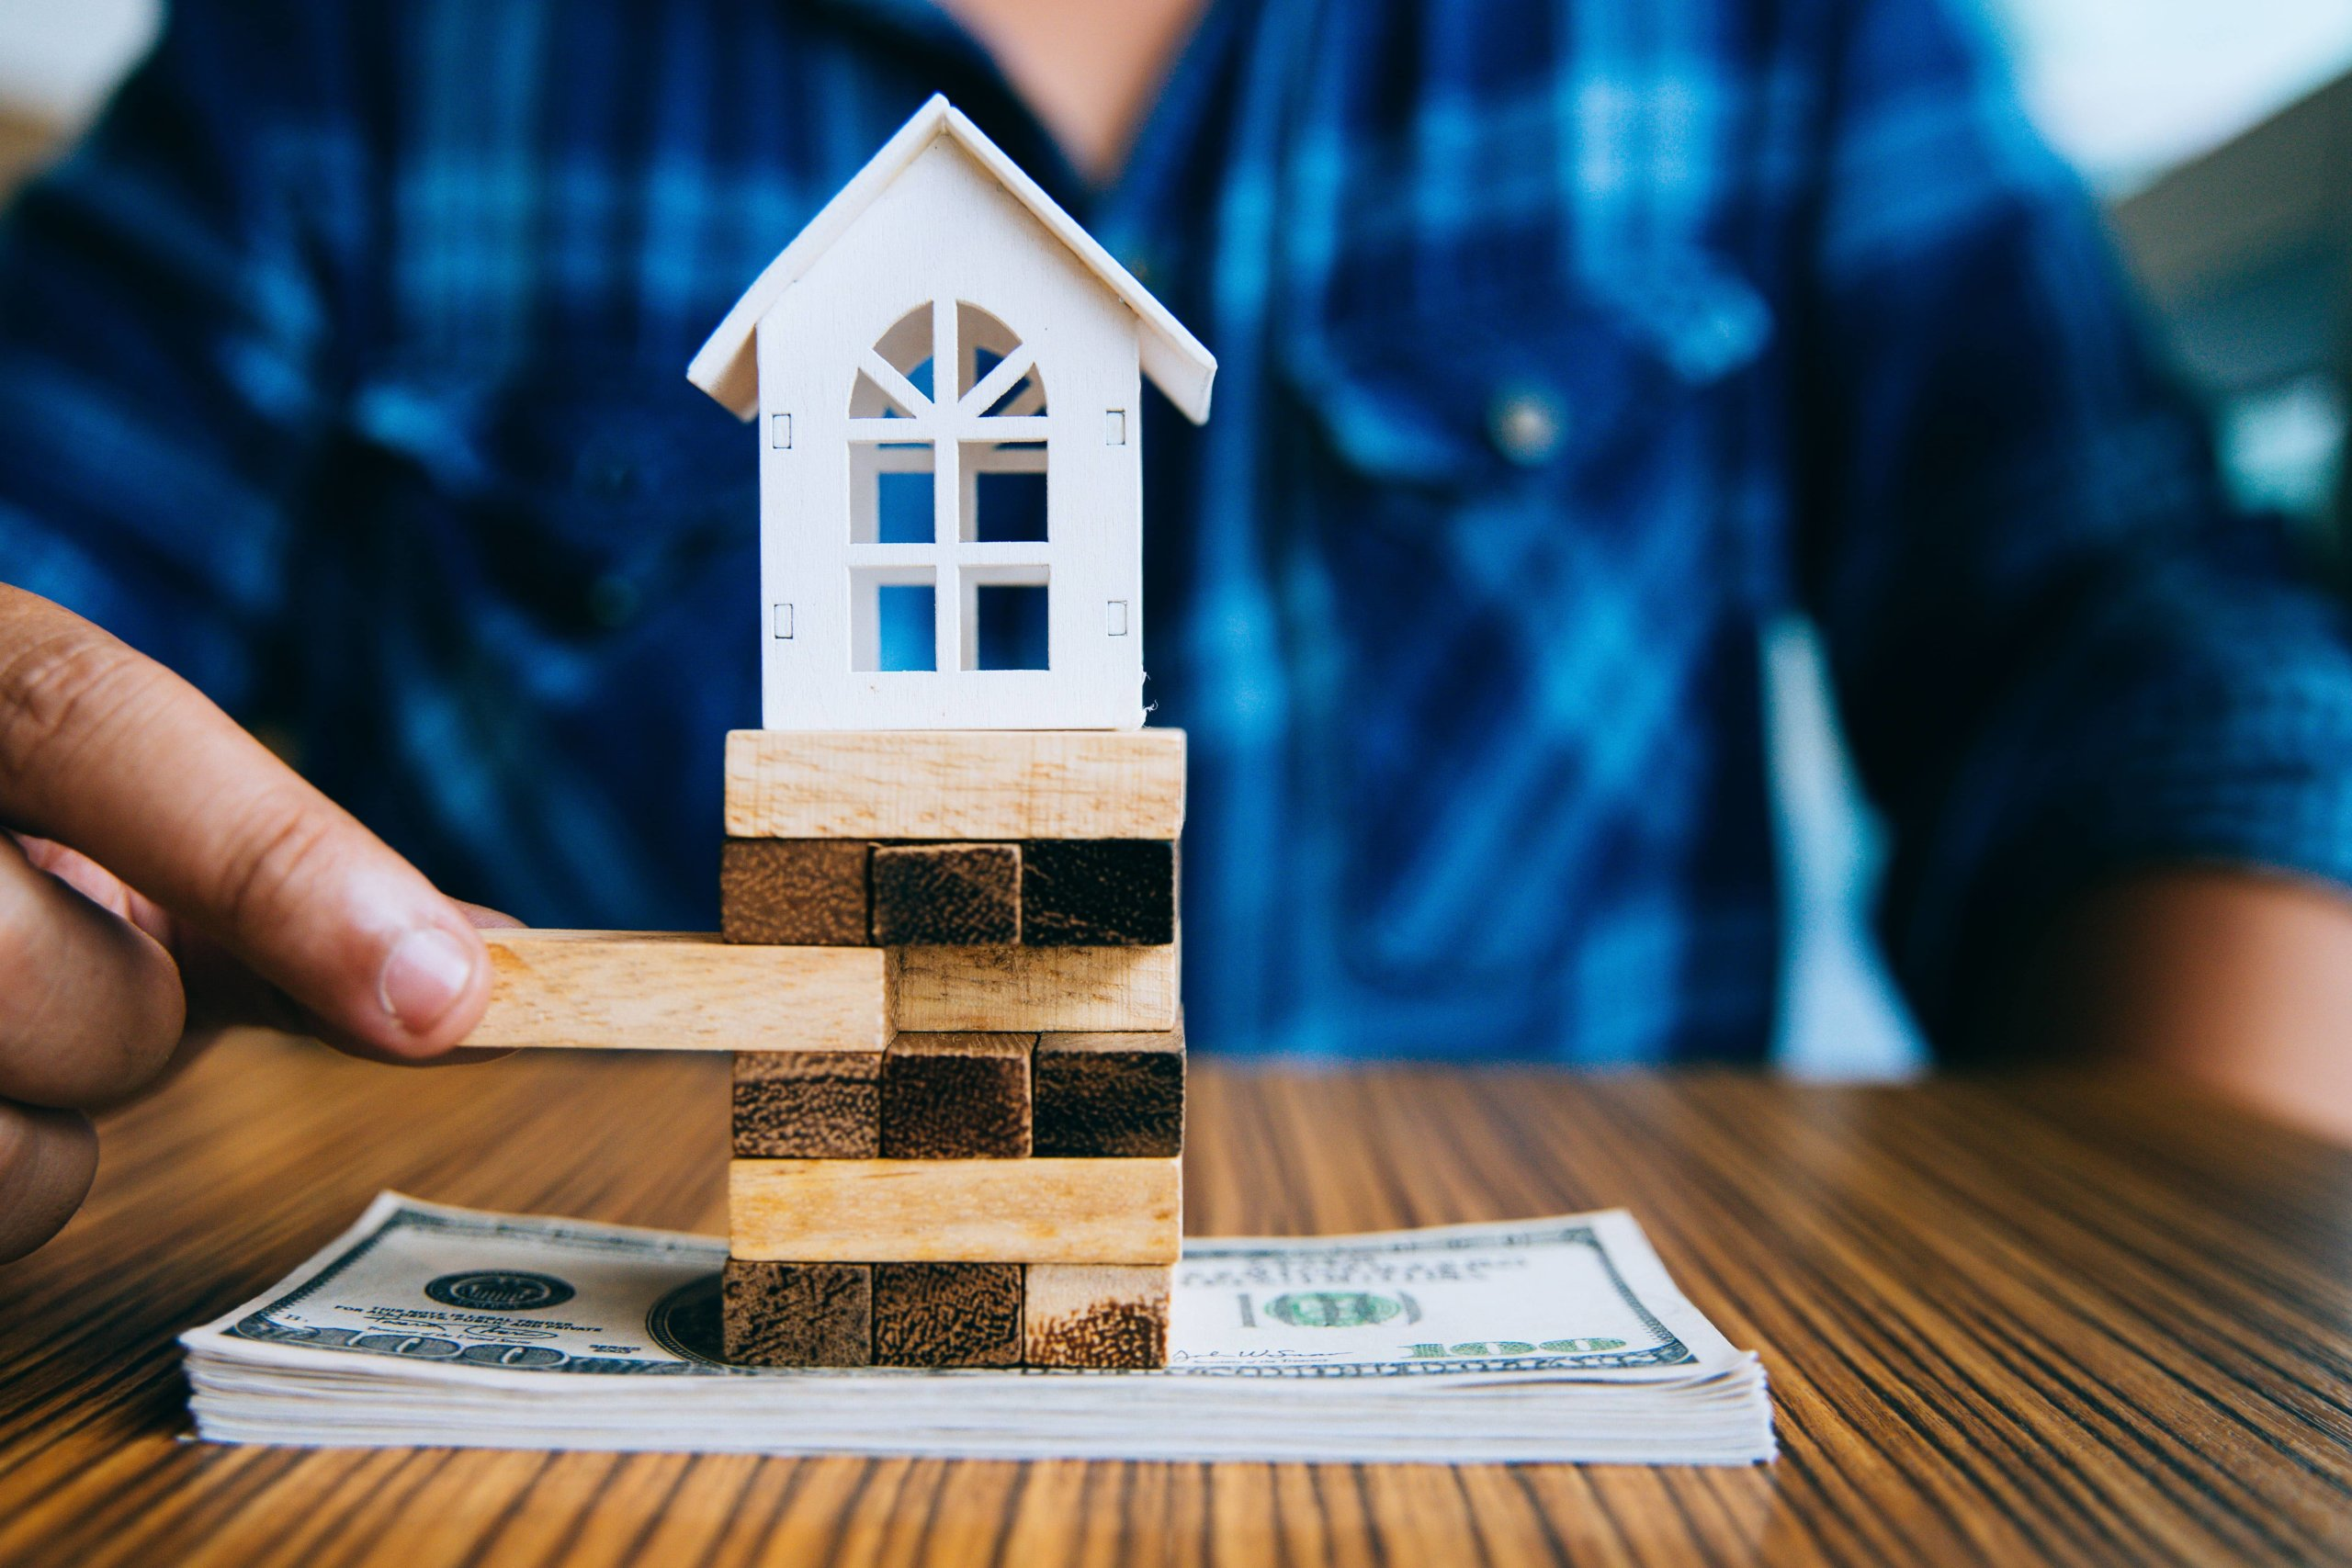 Man in blue shirt playing jenga sandwiched between a house and a stack of money.